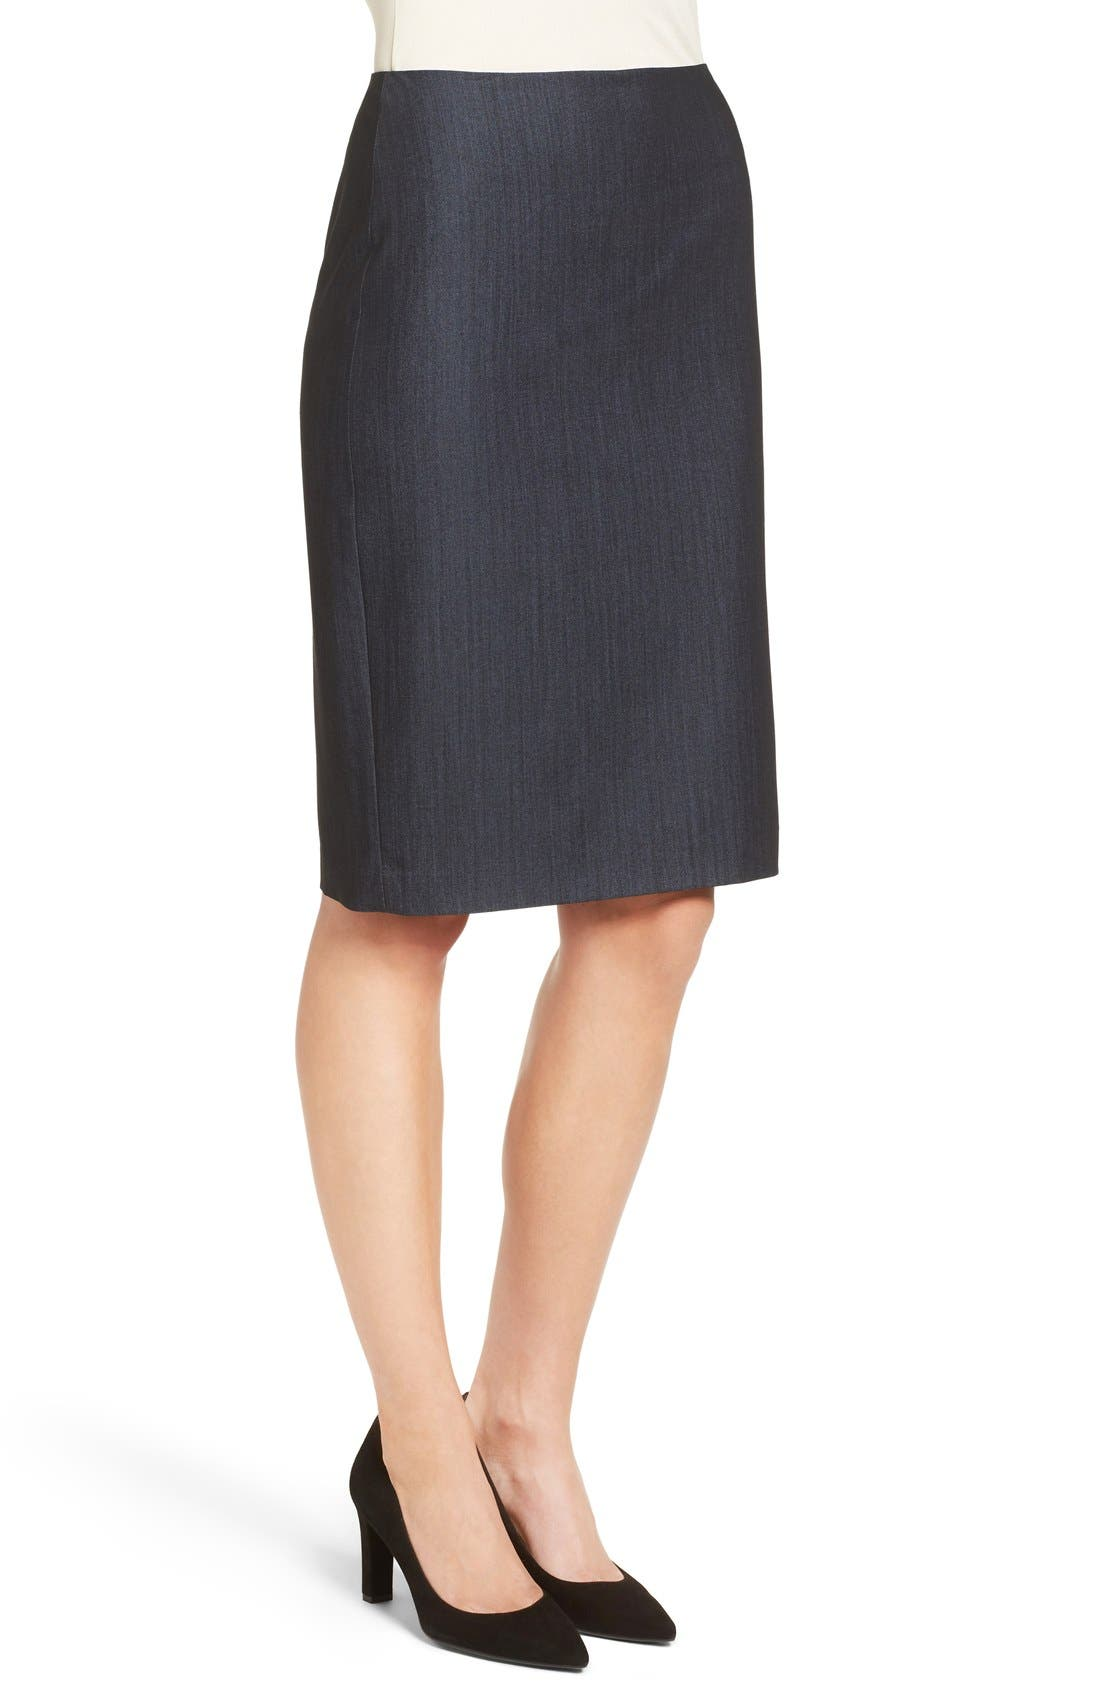 ANNE KLEIN,                             Stretch Woven Suit Skirt,                             Alternate thumbnail 5, color,                             INDIGO TWILL